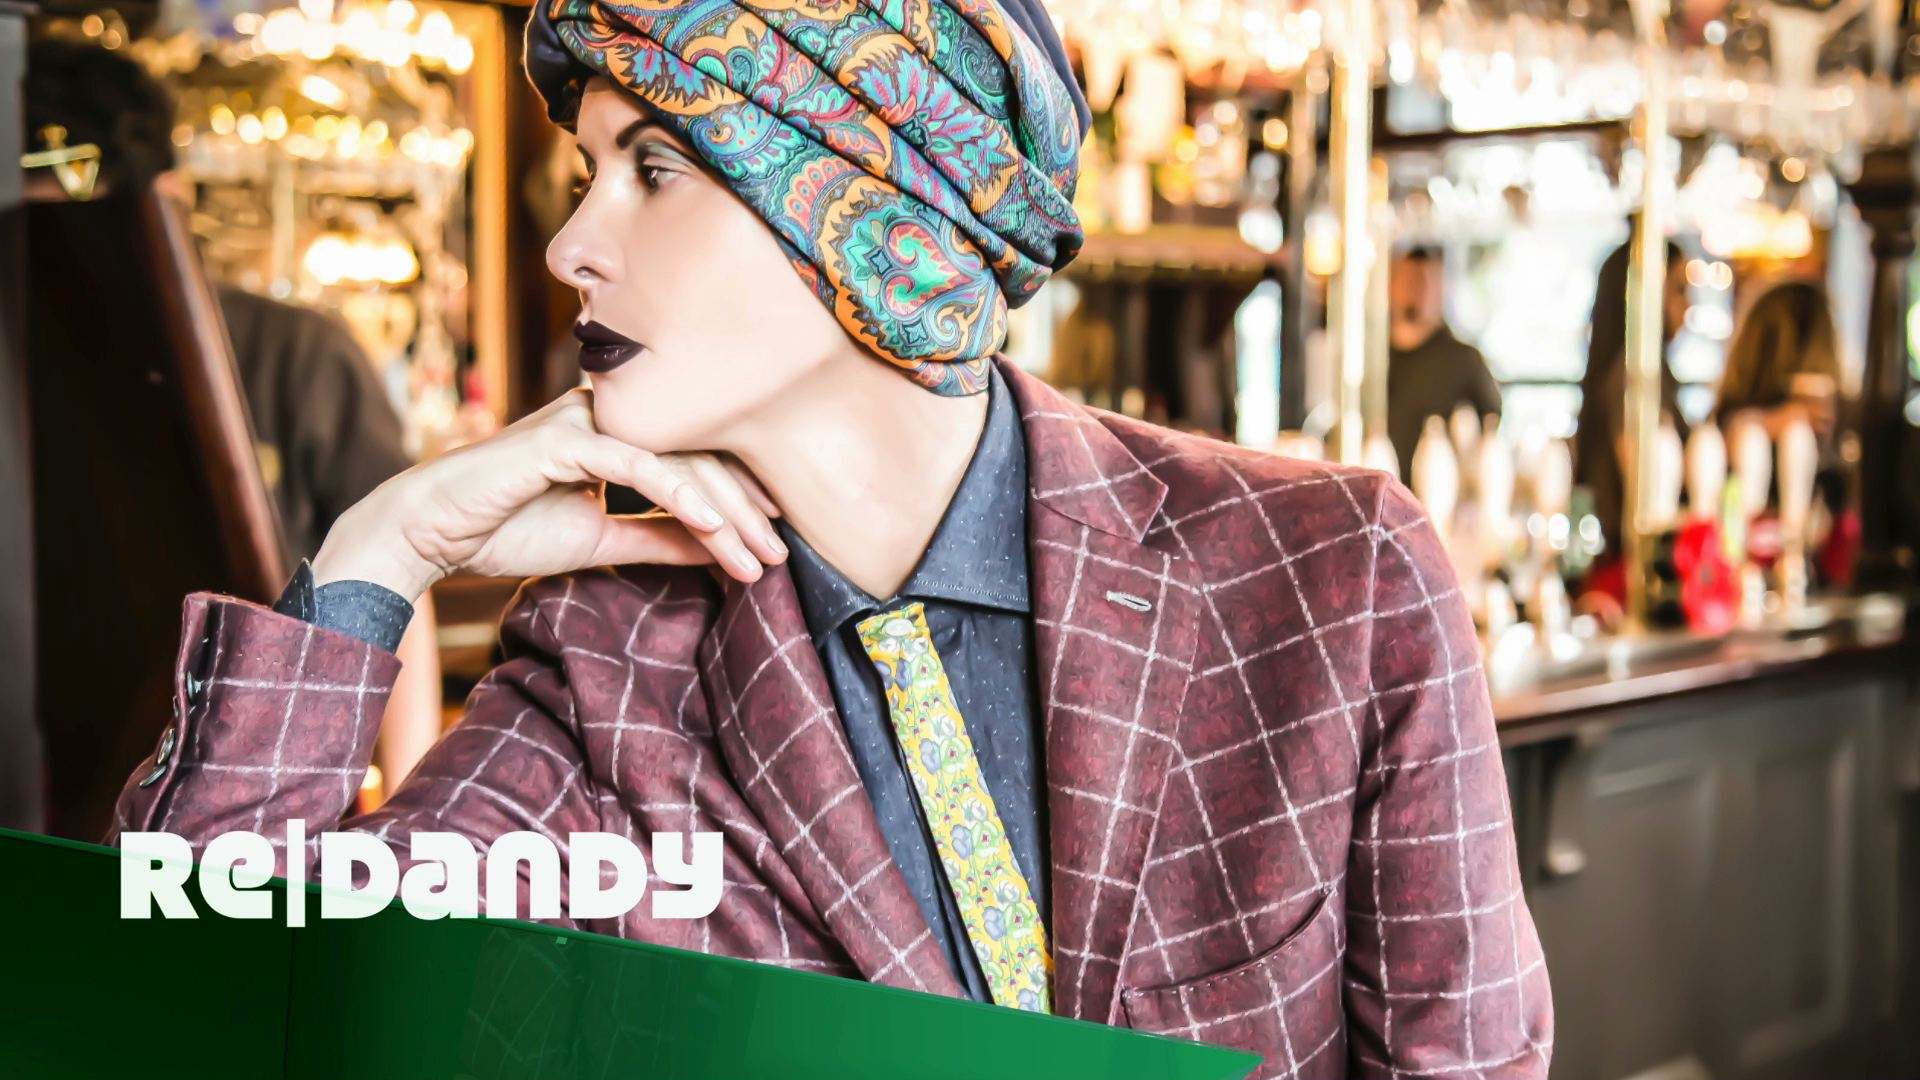 Re|Dandy Accessori Moda - Maggio 2017